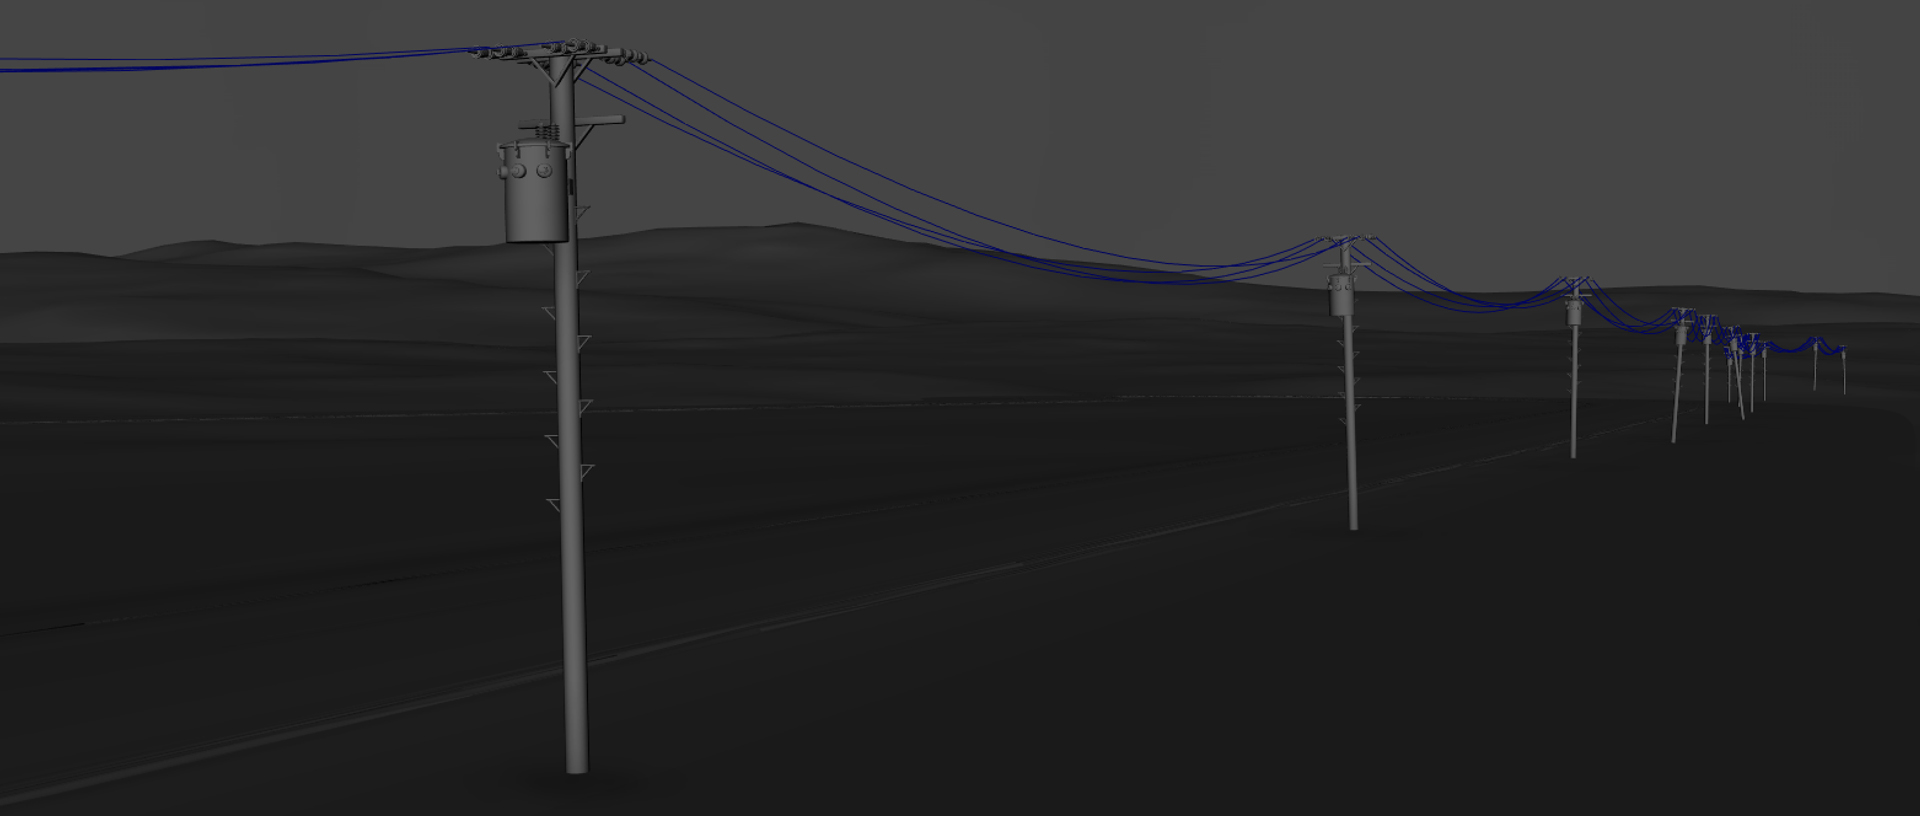 Download lunar's hanging wire tool.